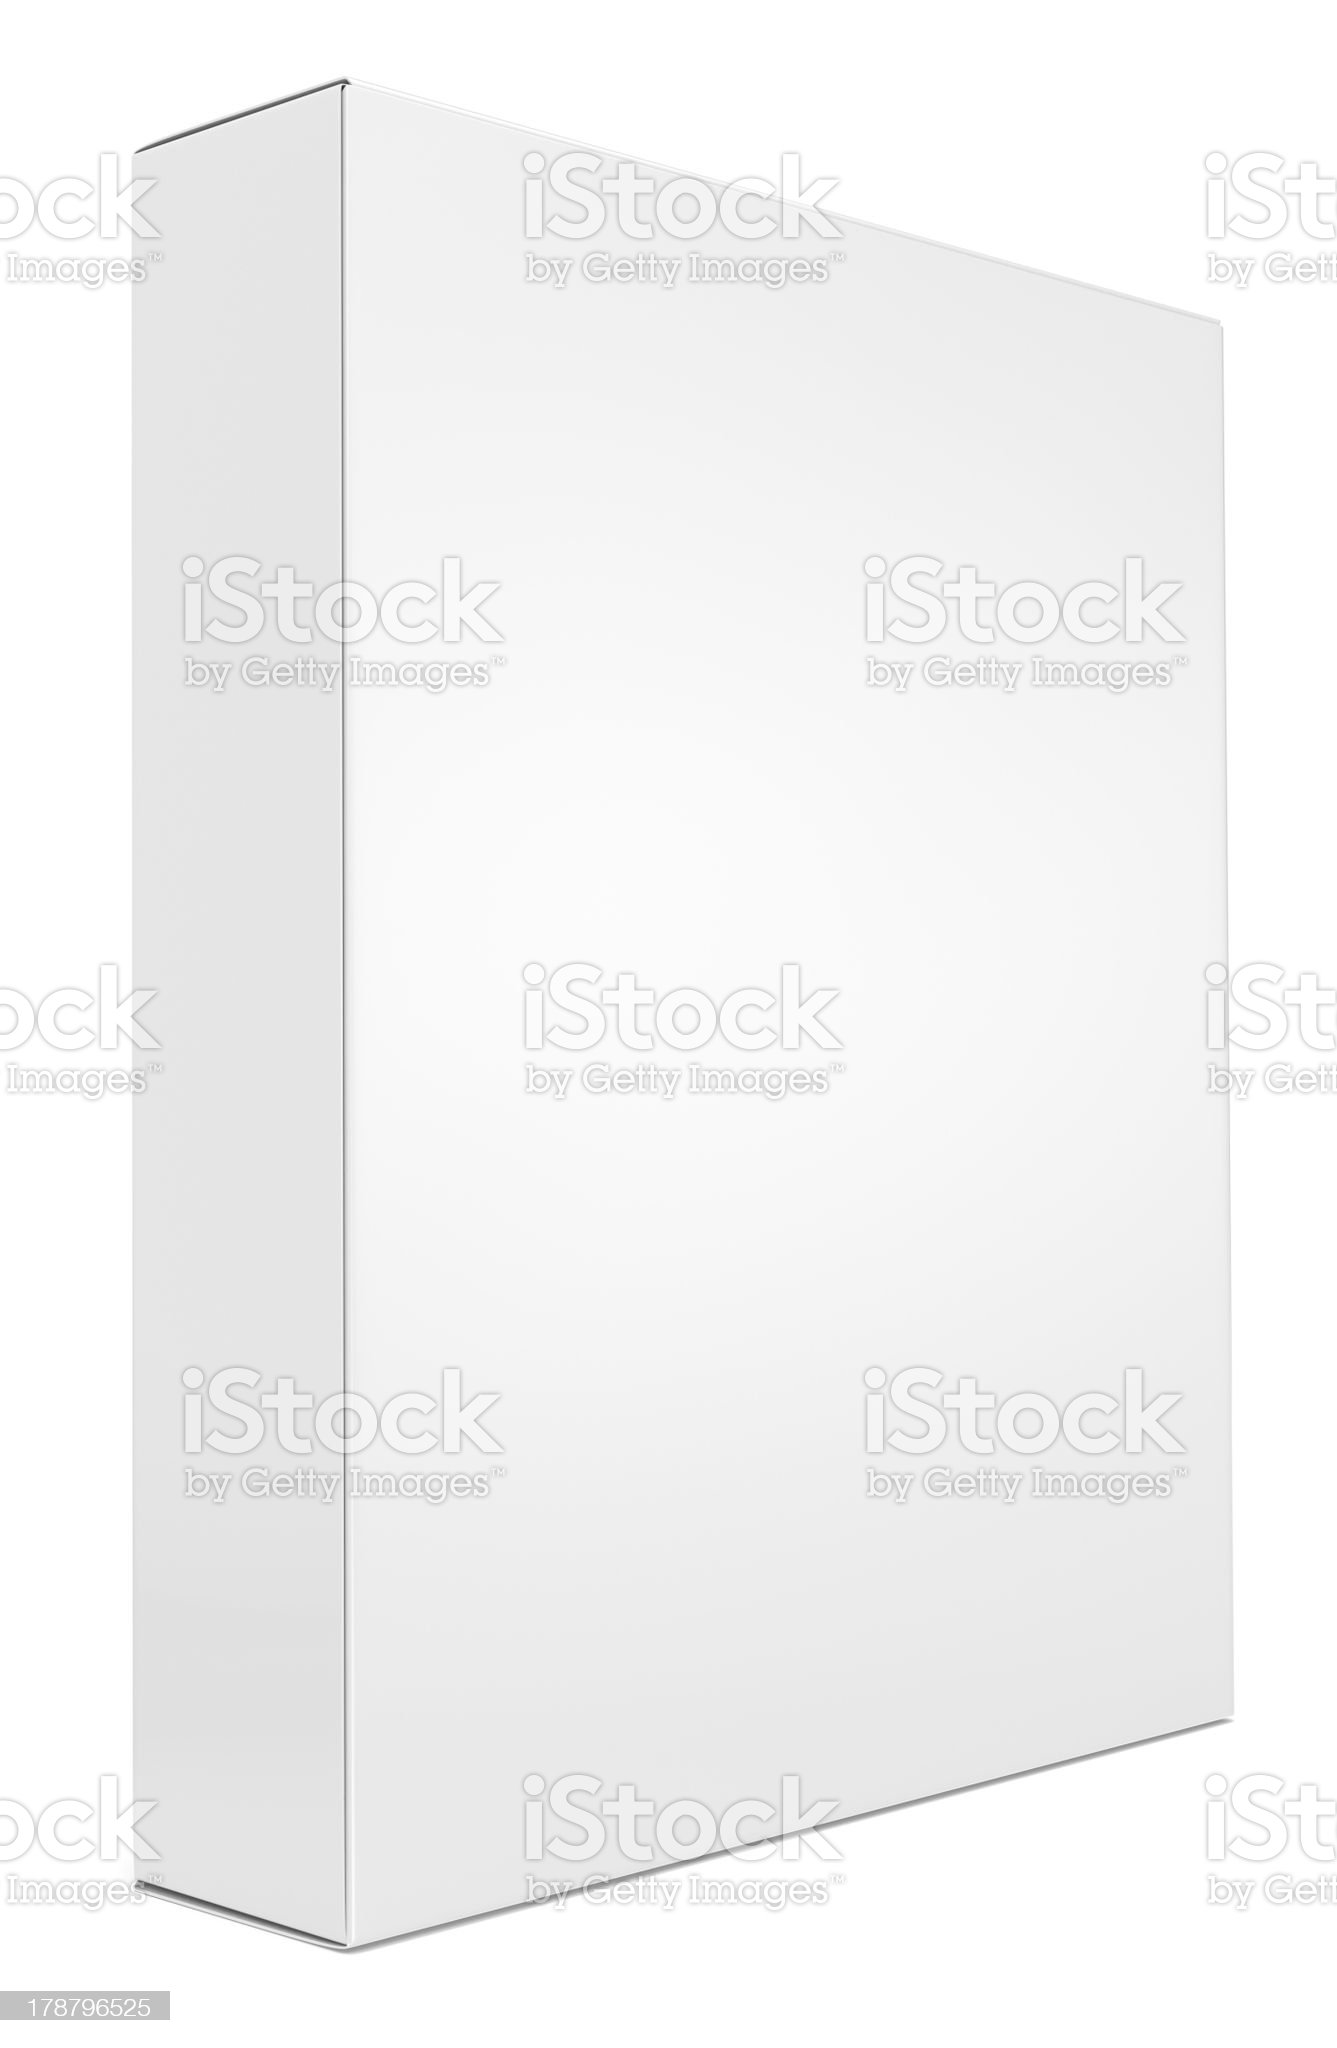 Box. royalty-free stock photo